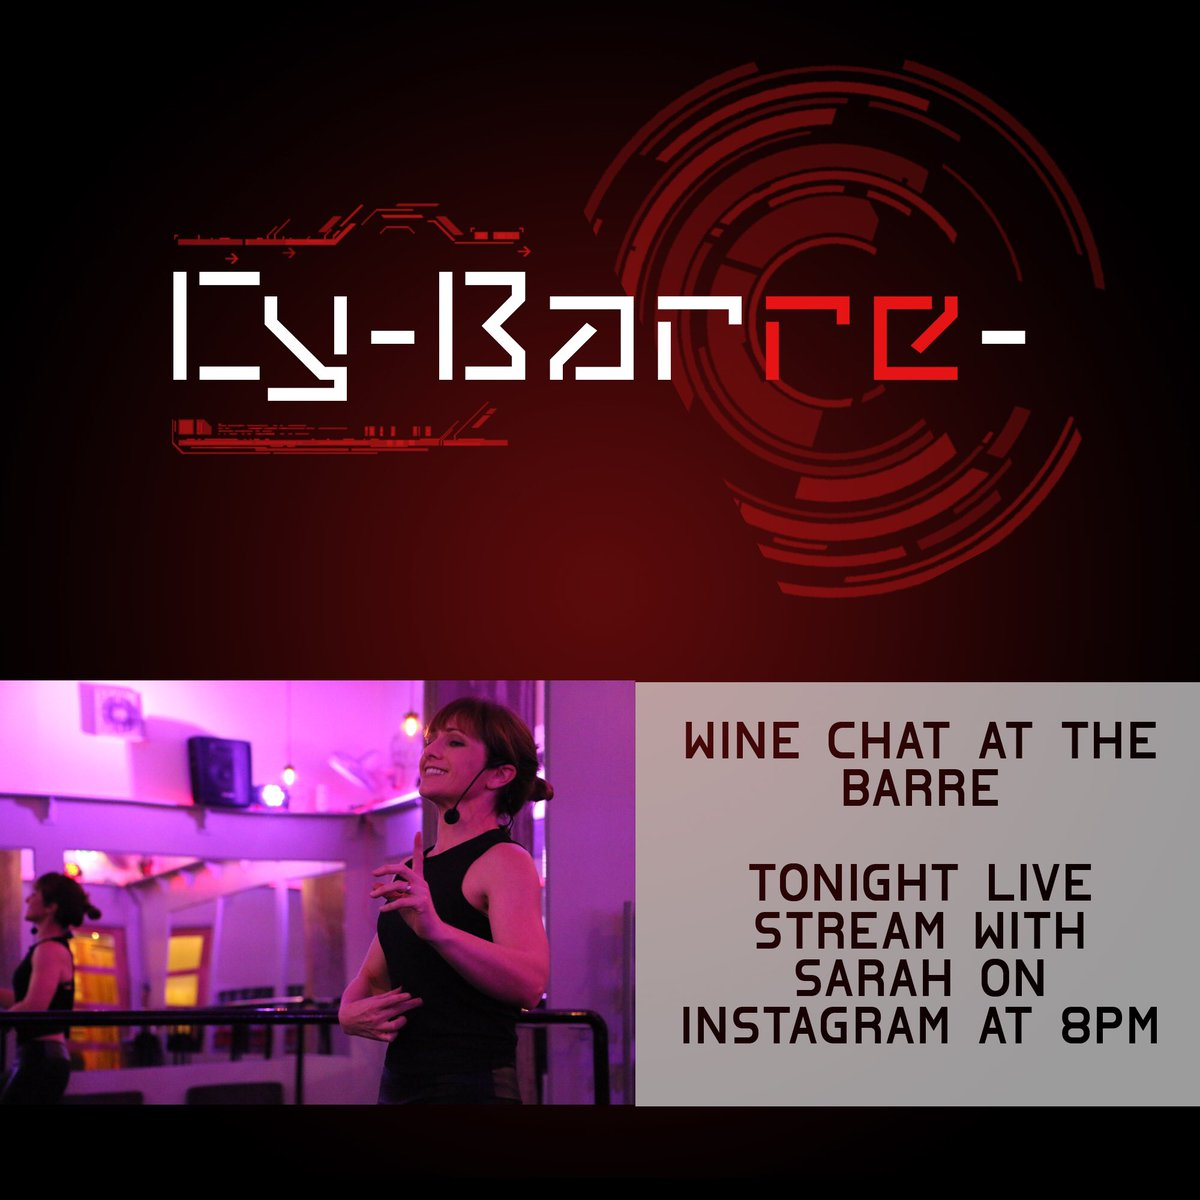 Surprise!!! Feel like having a glass of vino with your Cy-Barre- buddies? Well tonight @barreboss is hosting the first wine chat at The Barre!  Join in at 8pm #cybarre #thebarre  #fitness #barre #training #instafit #workhardplayhard #exercise #workout